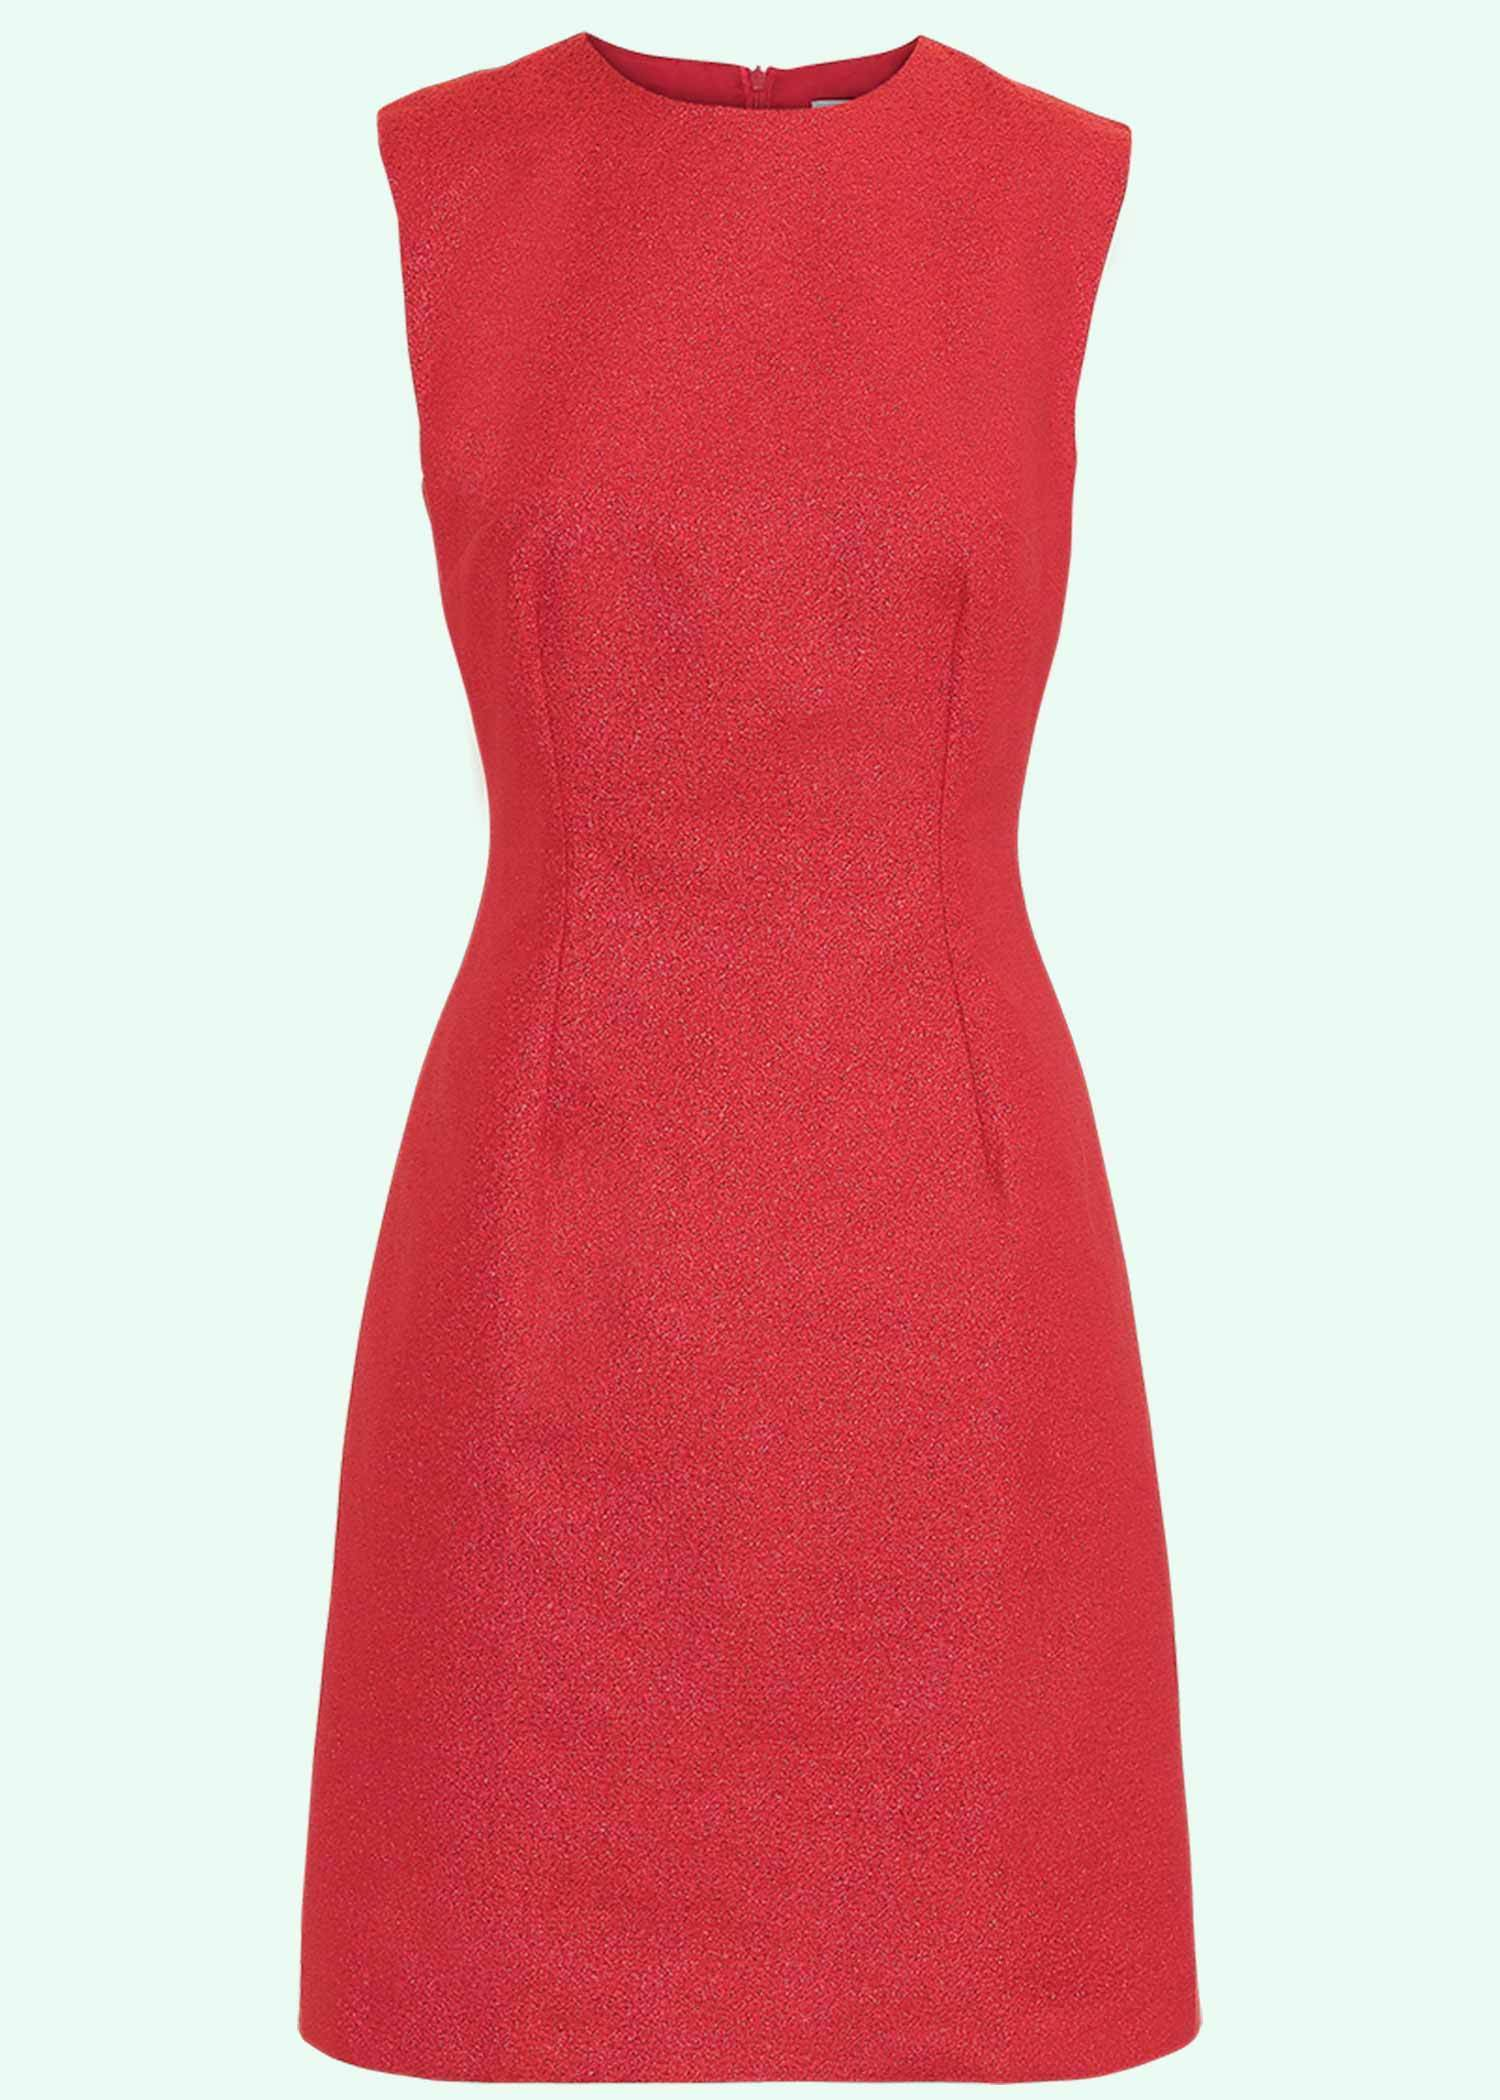 60s style Cocktail dress with glitter in red